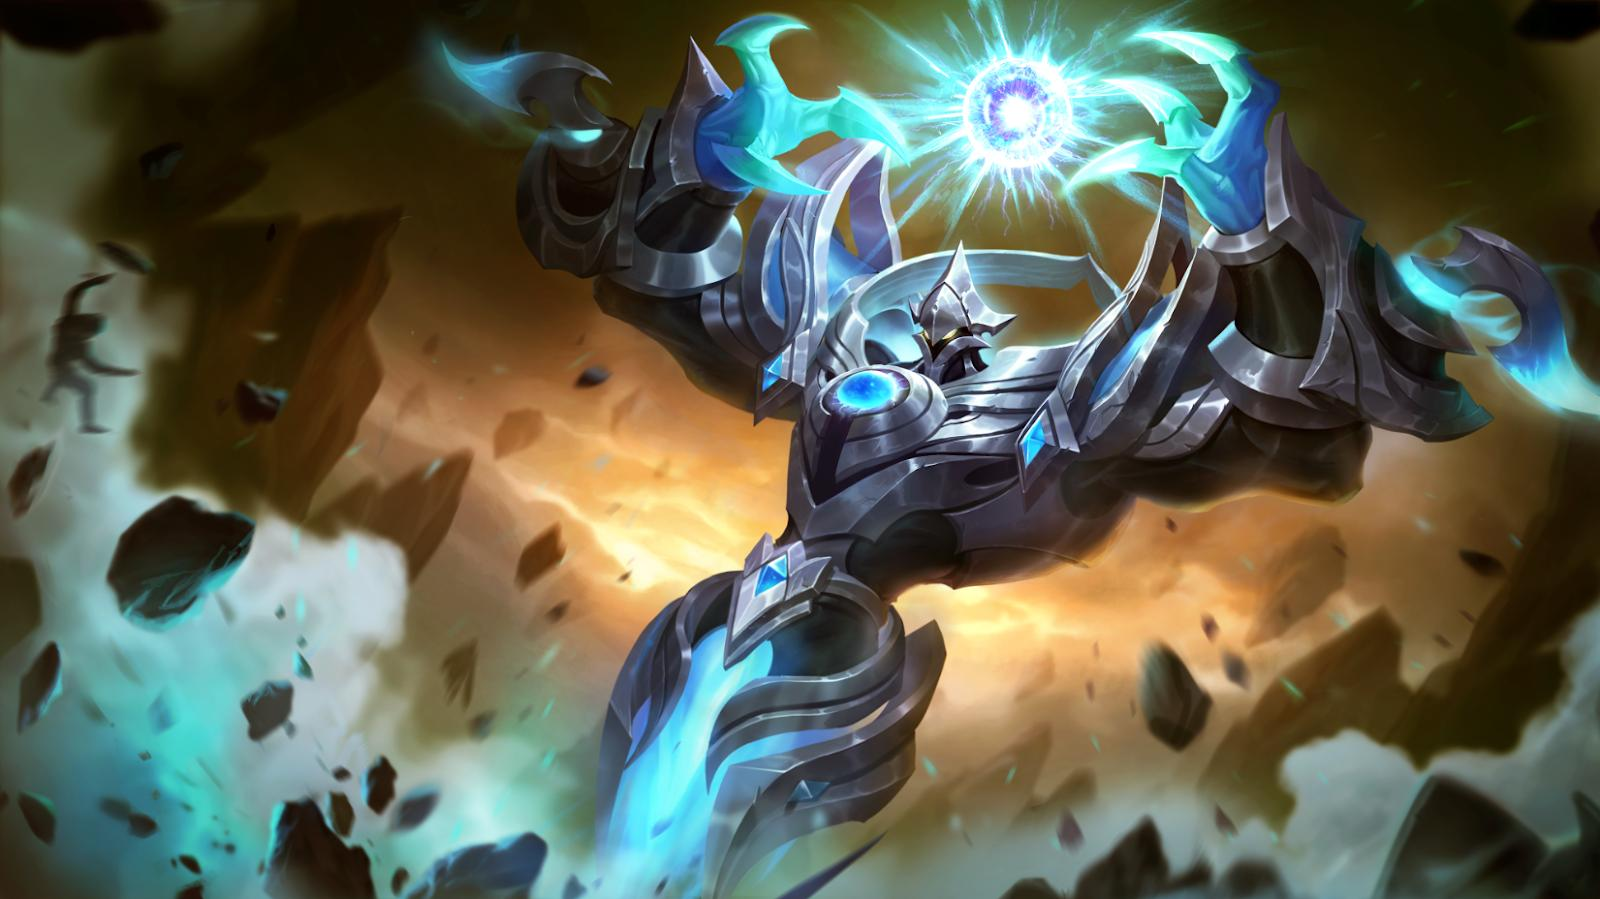 Wallpaper Untuk Mobile Legend For Android APK Download